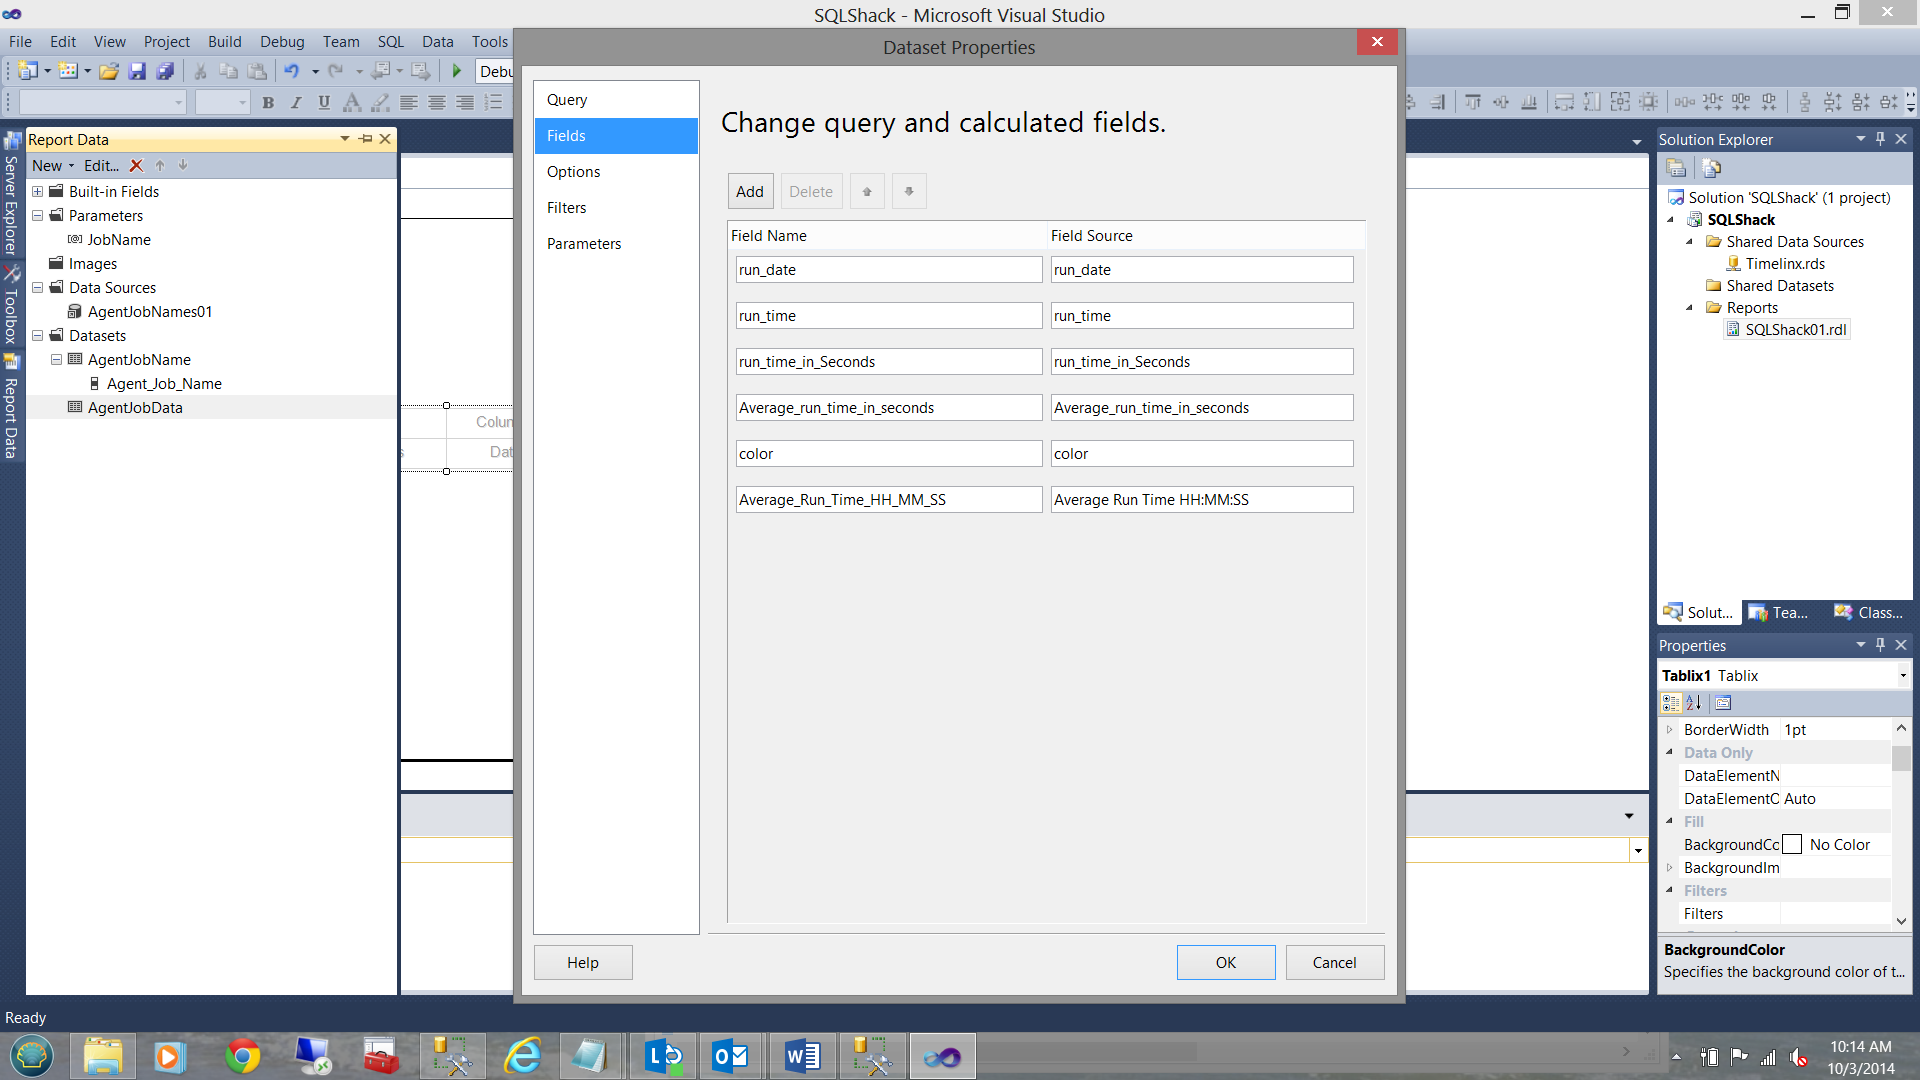 Change query and calculated fields dialog